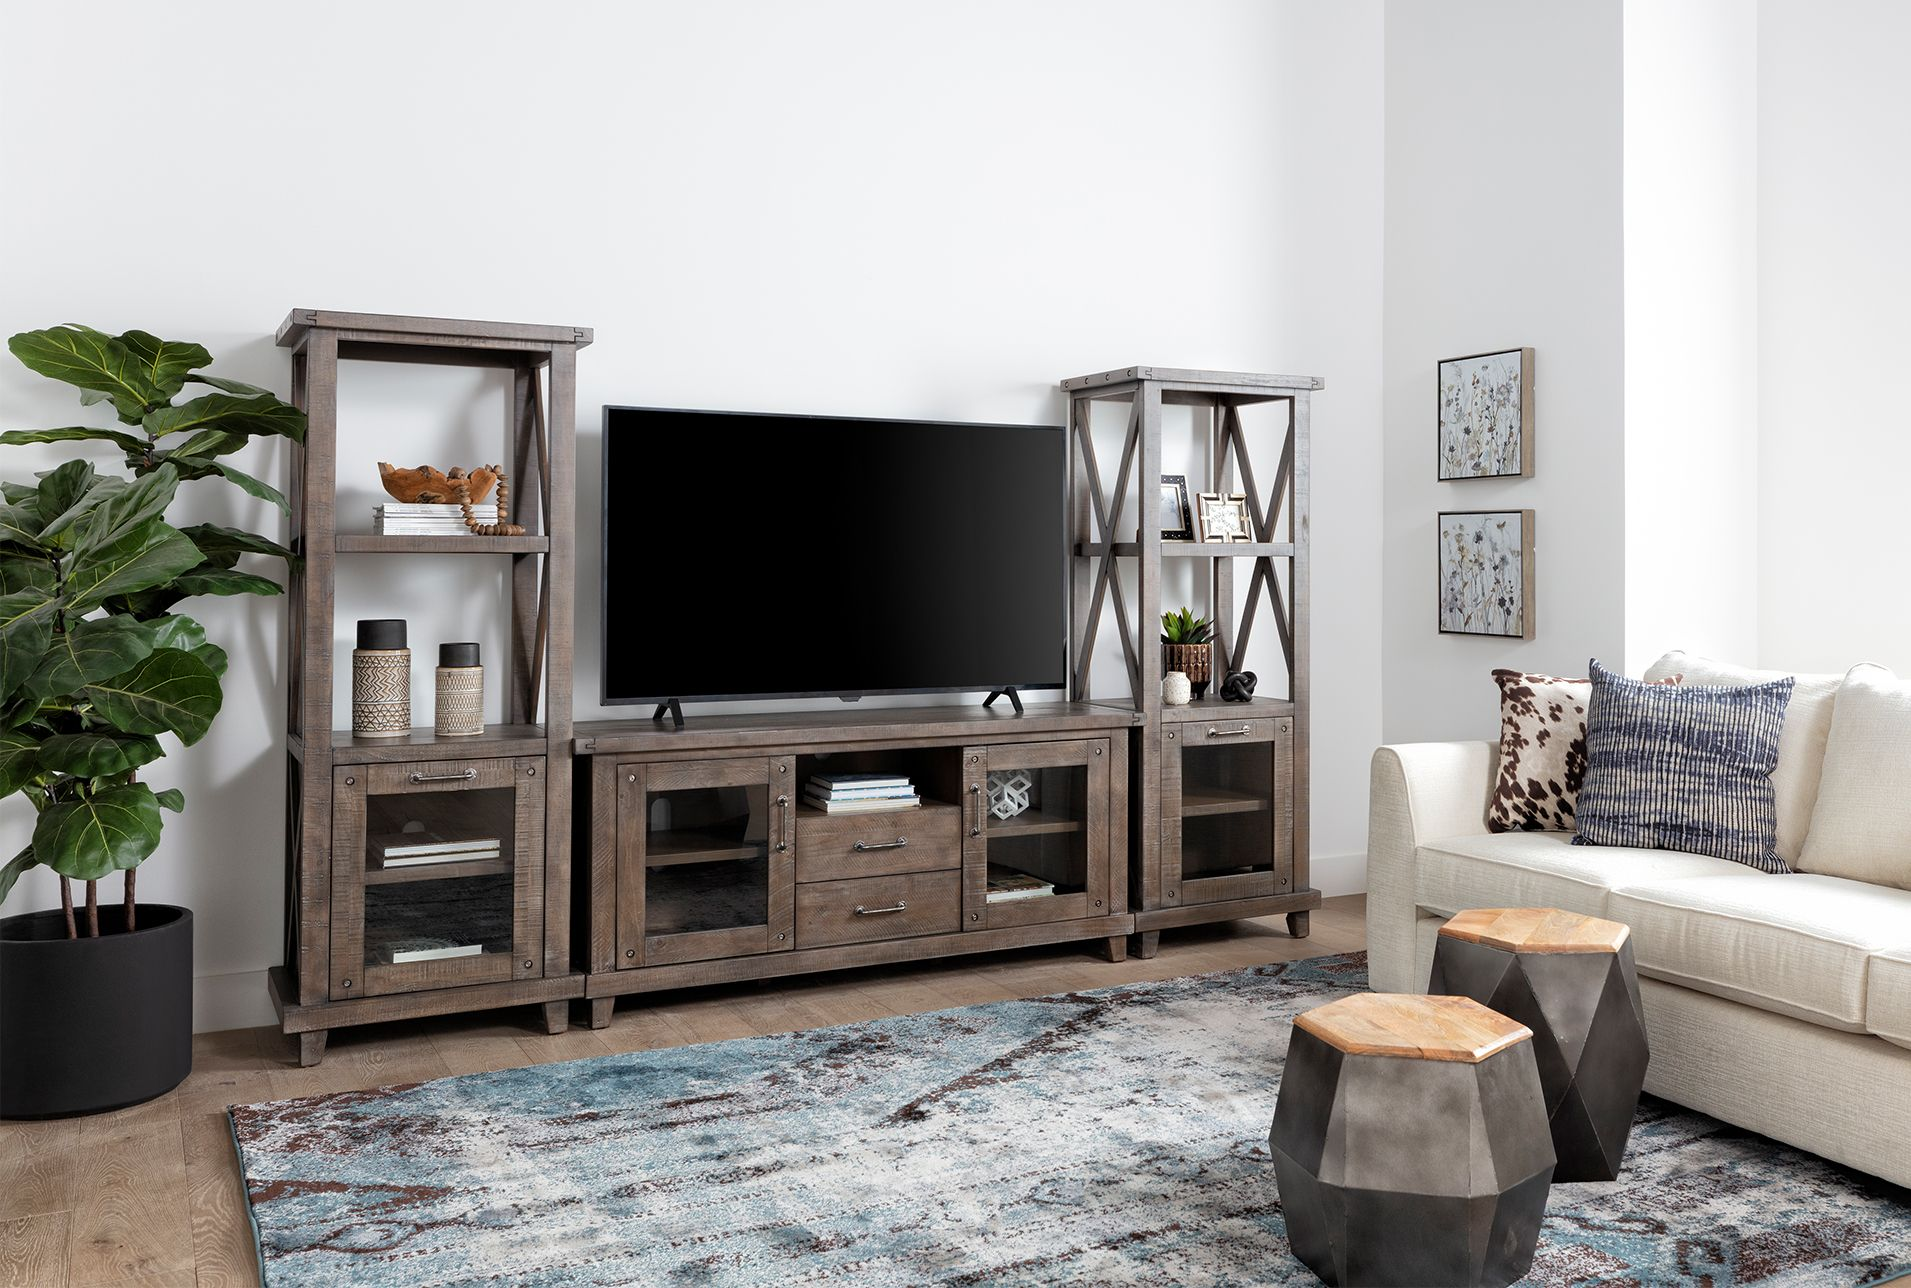 Jaxon Grey 3 Piece Entertainment Center With 68 Inch Tv Stand With Glass Doors Living Room Entertainment Center Entertainment Center Tv Stand Living Spaces